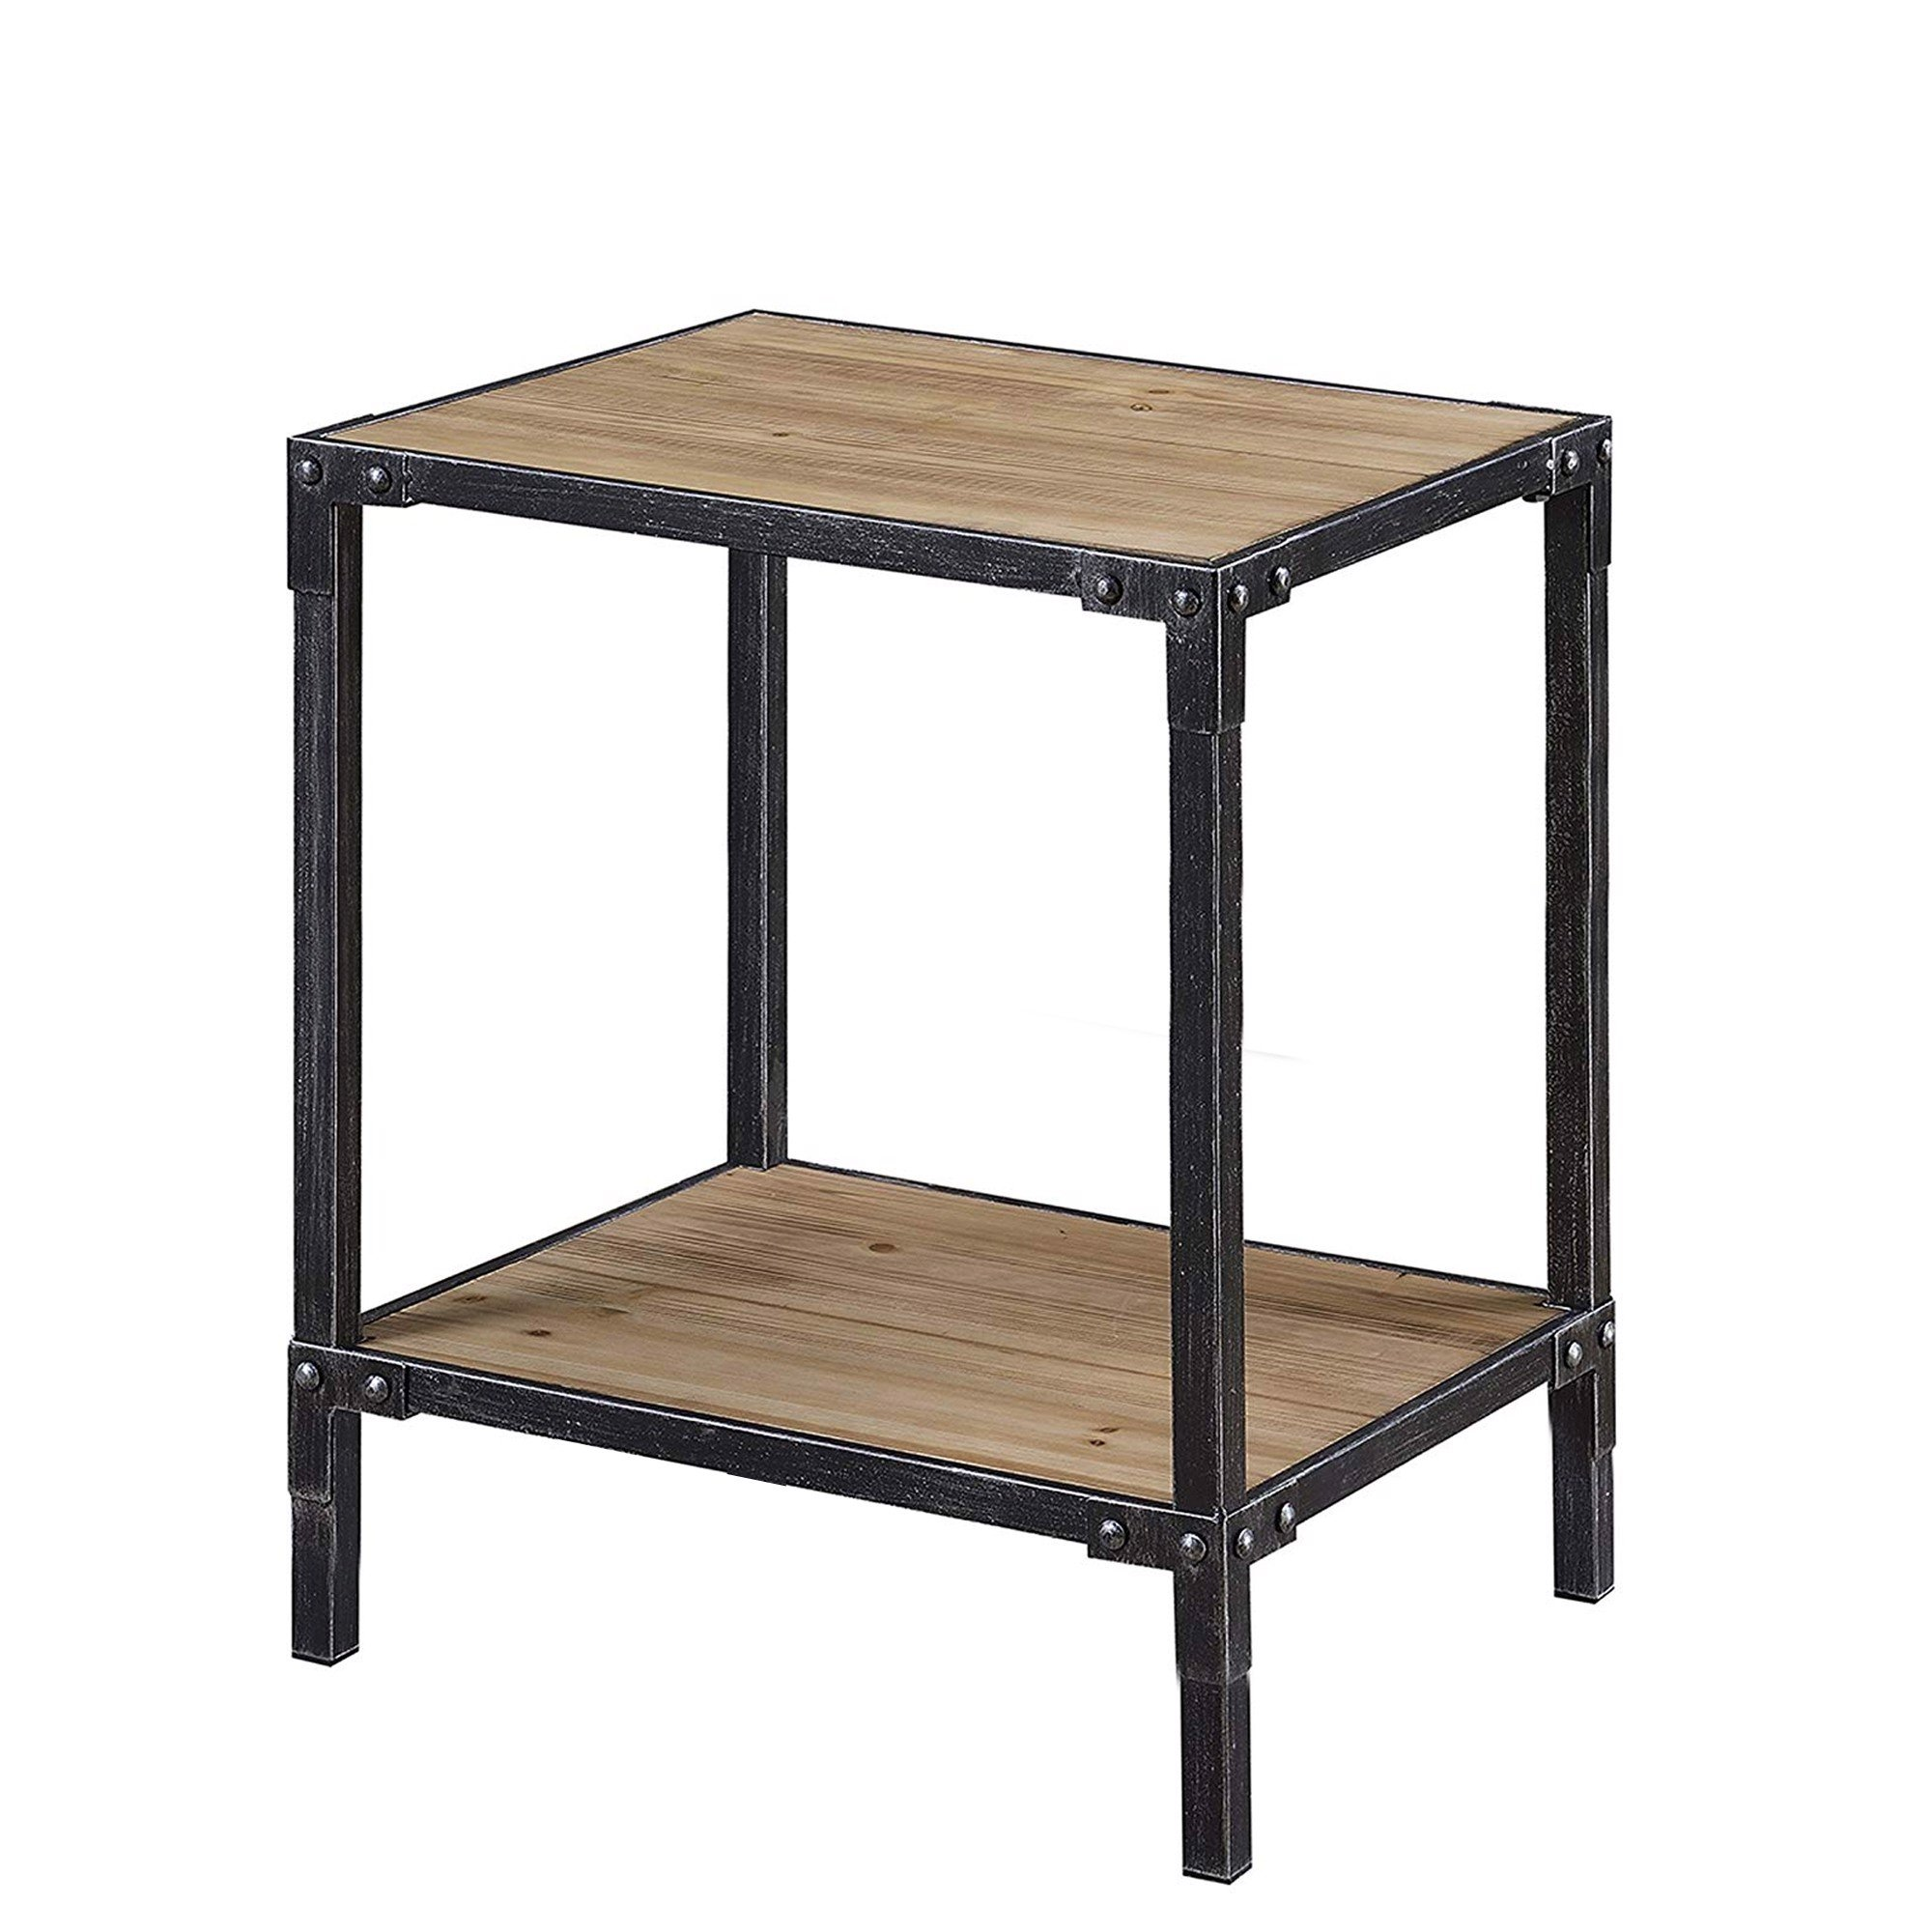 Side table <br/>IDT7125